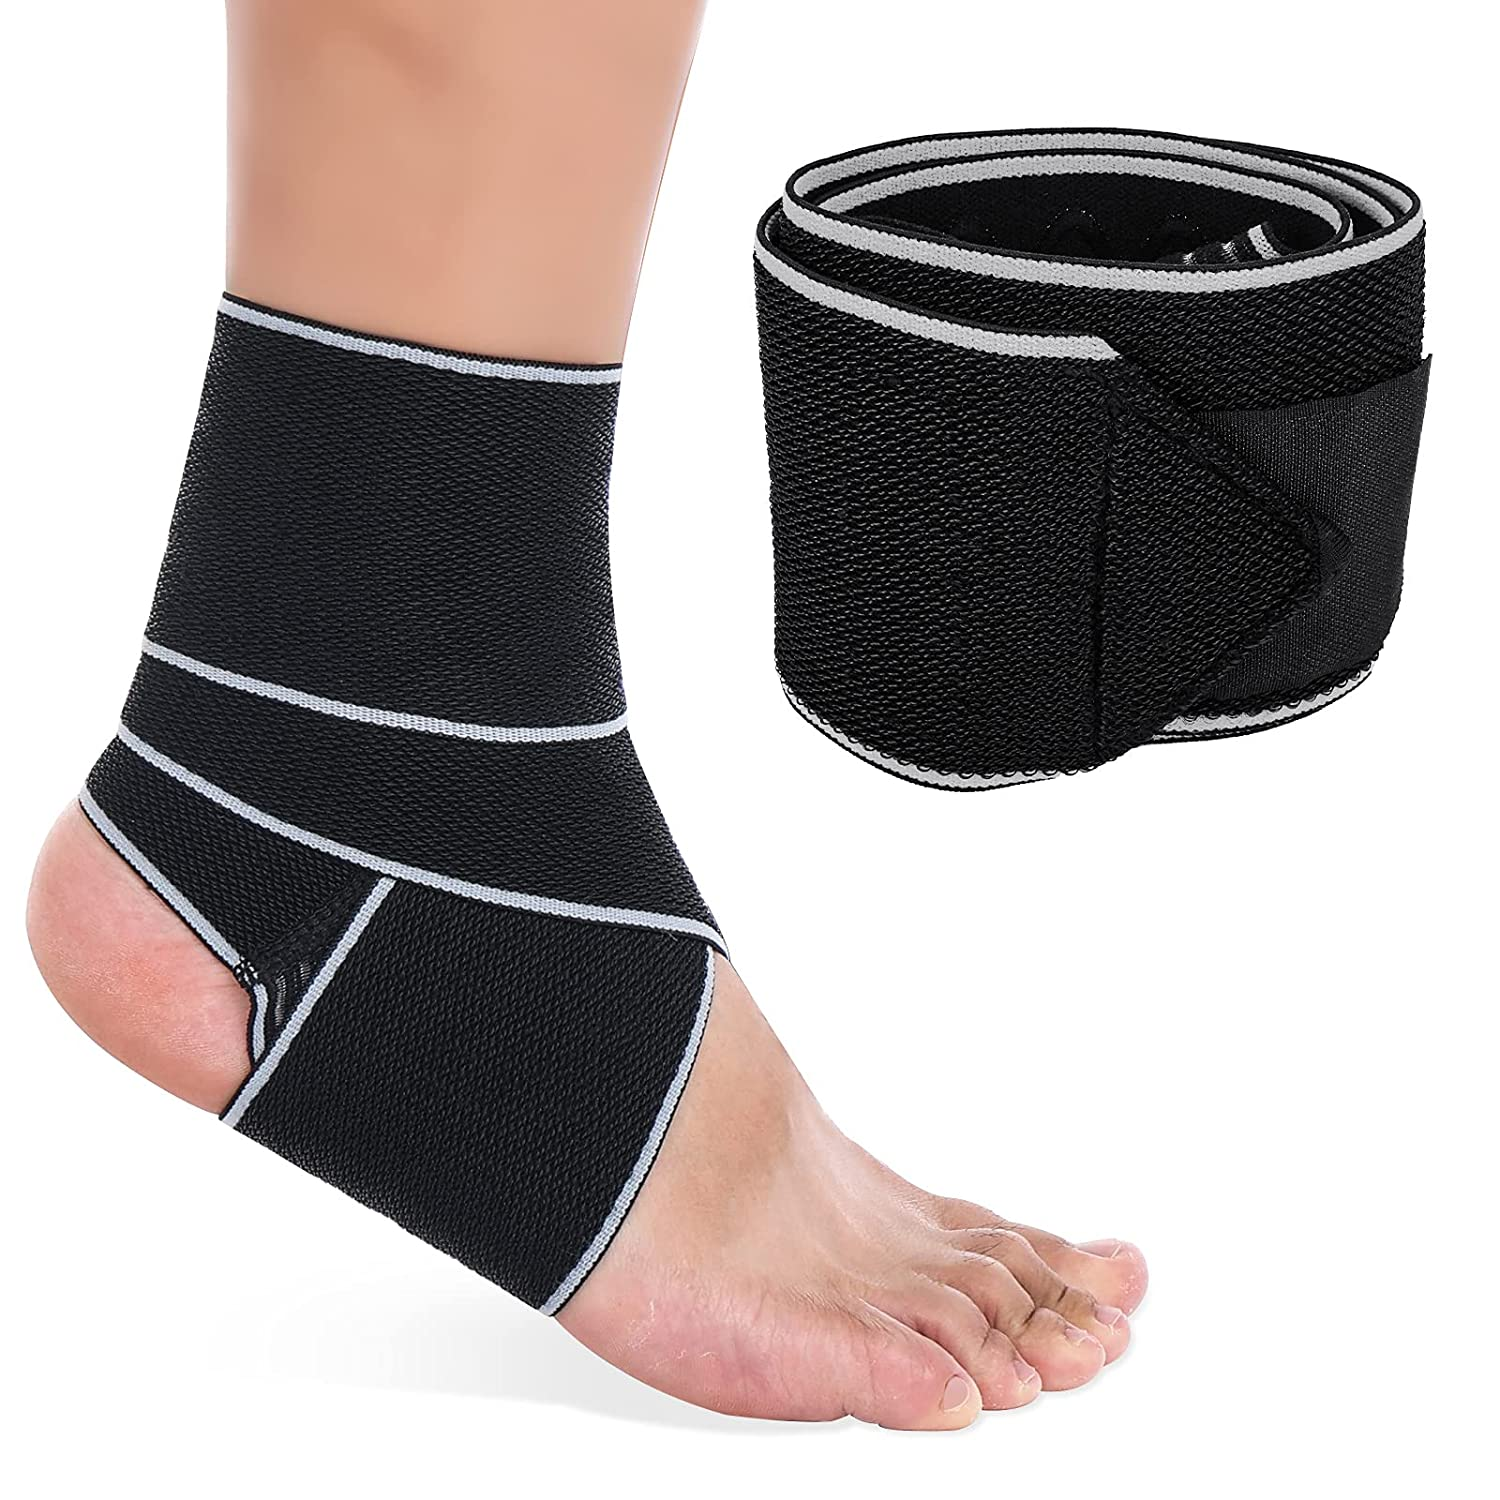 ASTER Ankle Support Brace Cheap mail order specialty store Adjustable Breathabl Max 84% OFF Nylon